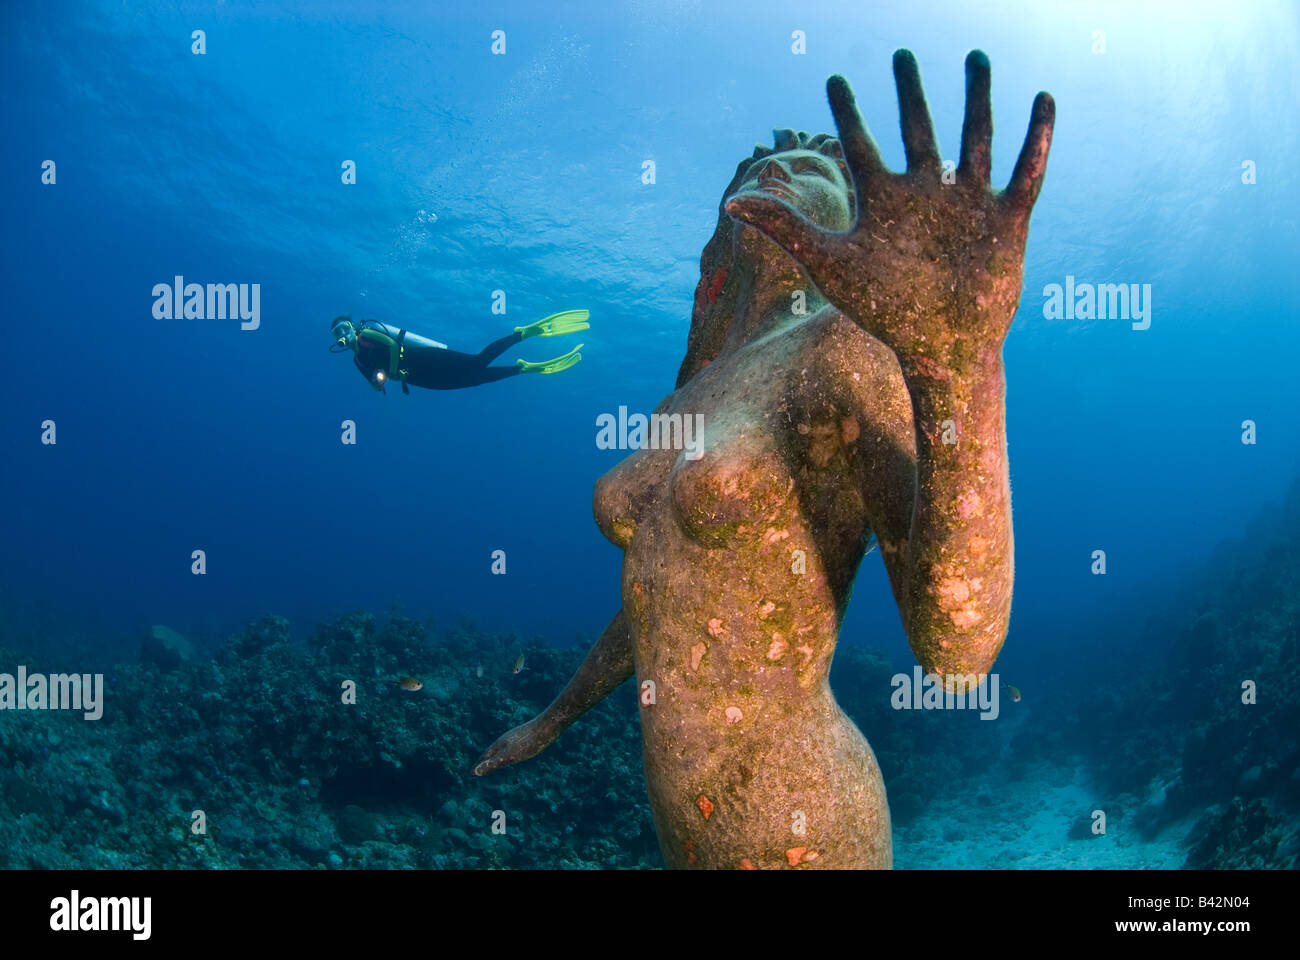 Mermaid Sculpture and Diver Grand Cayman Caribbean Sea Cayman Islands - Stock Image